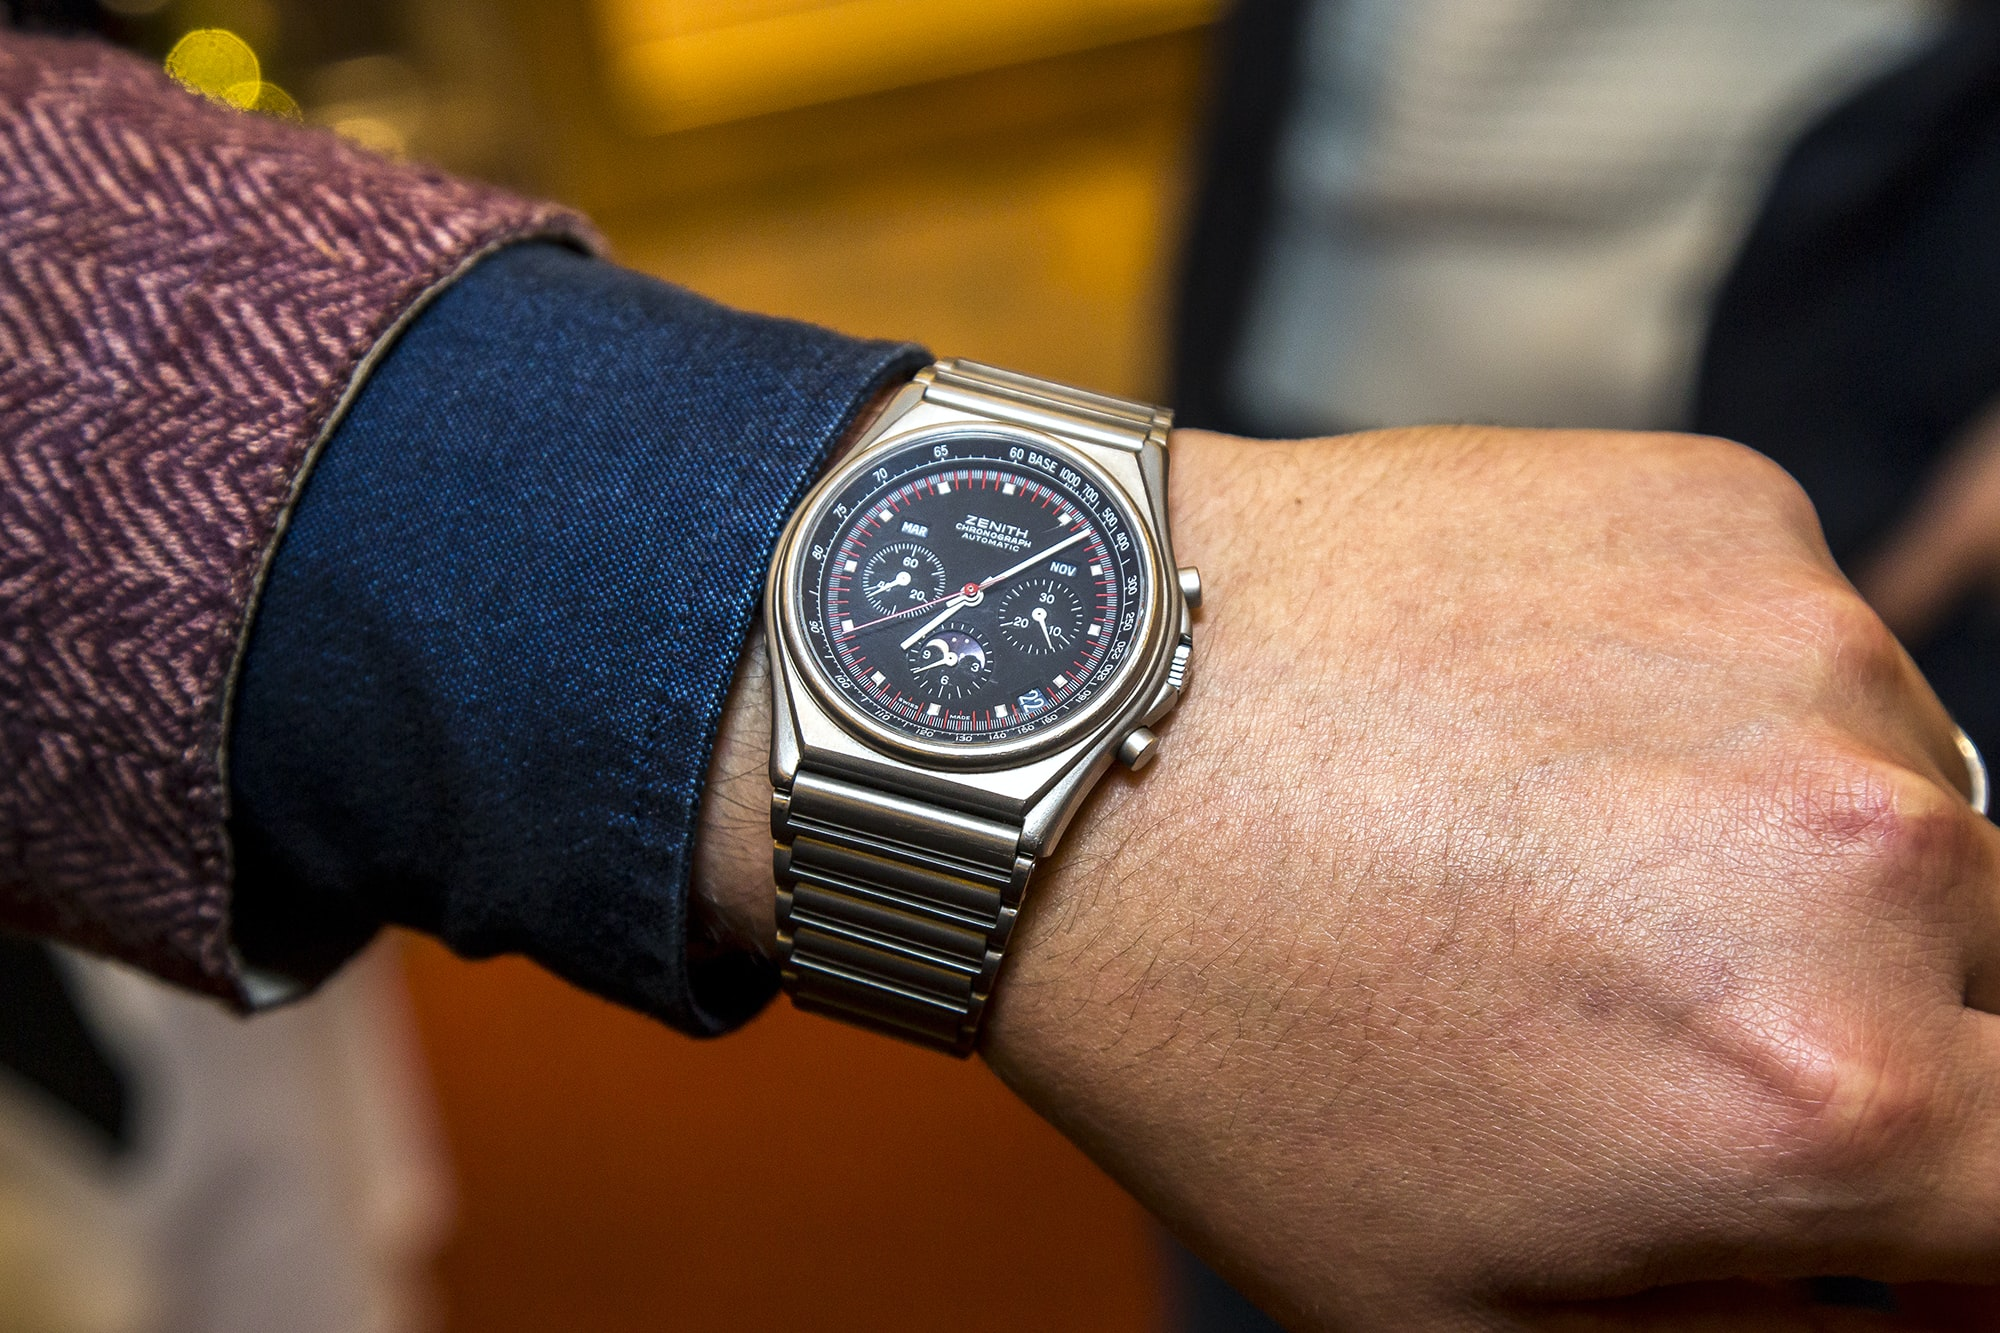 Photo Report: HODINKEE Hosts A Collector Get-Together At The Wempe Boutique In London Photo Report: HODINKEE Hosts A Collector Get-Together At The Wempe Boutique In London 65